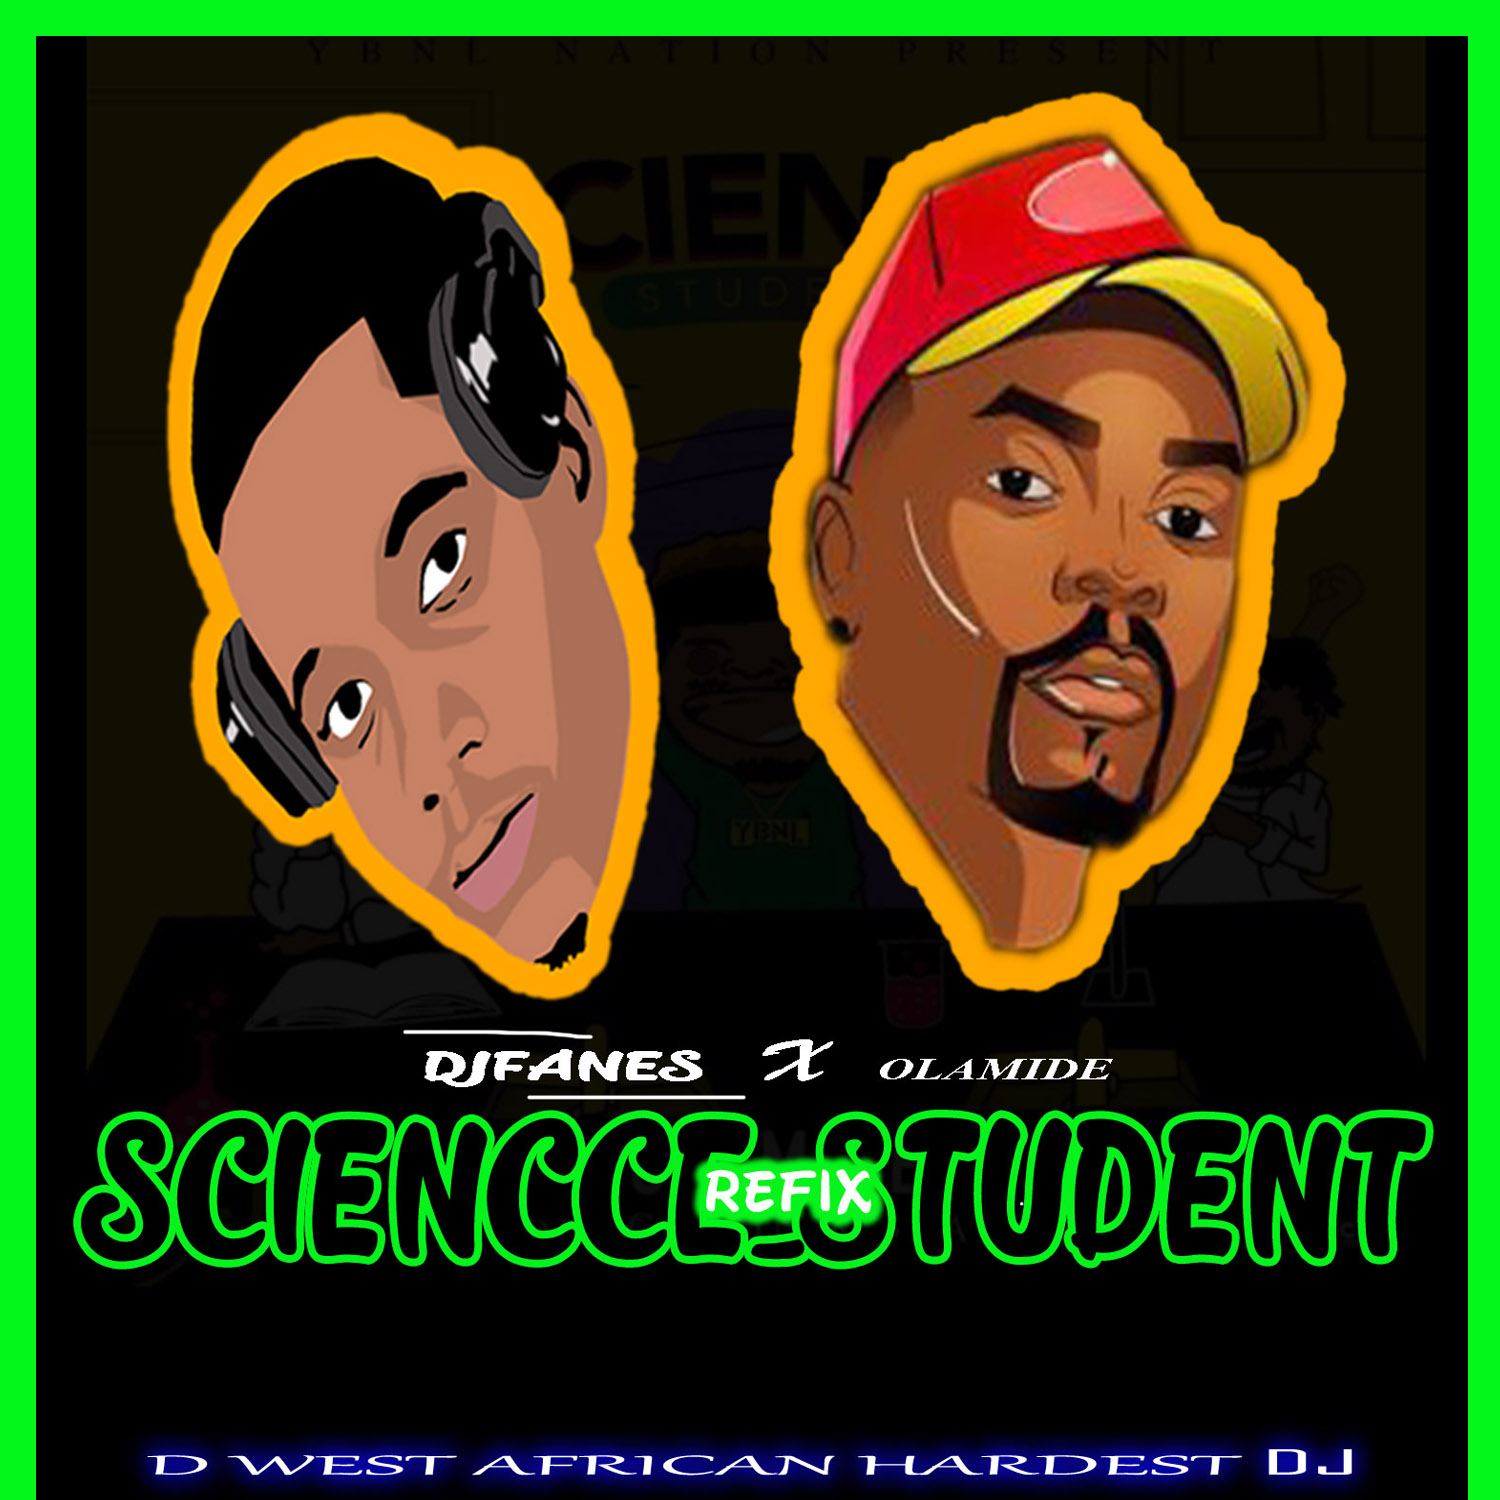 science student by olamide